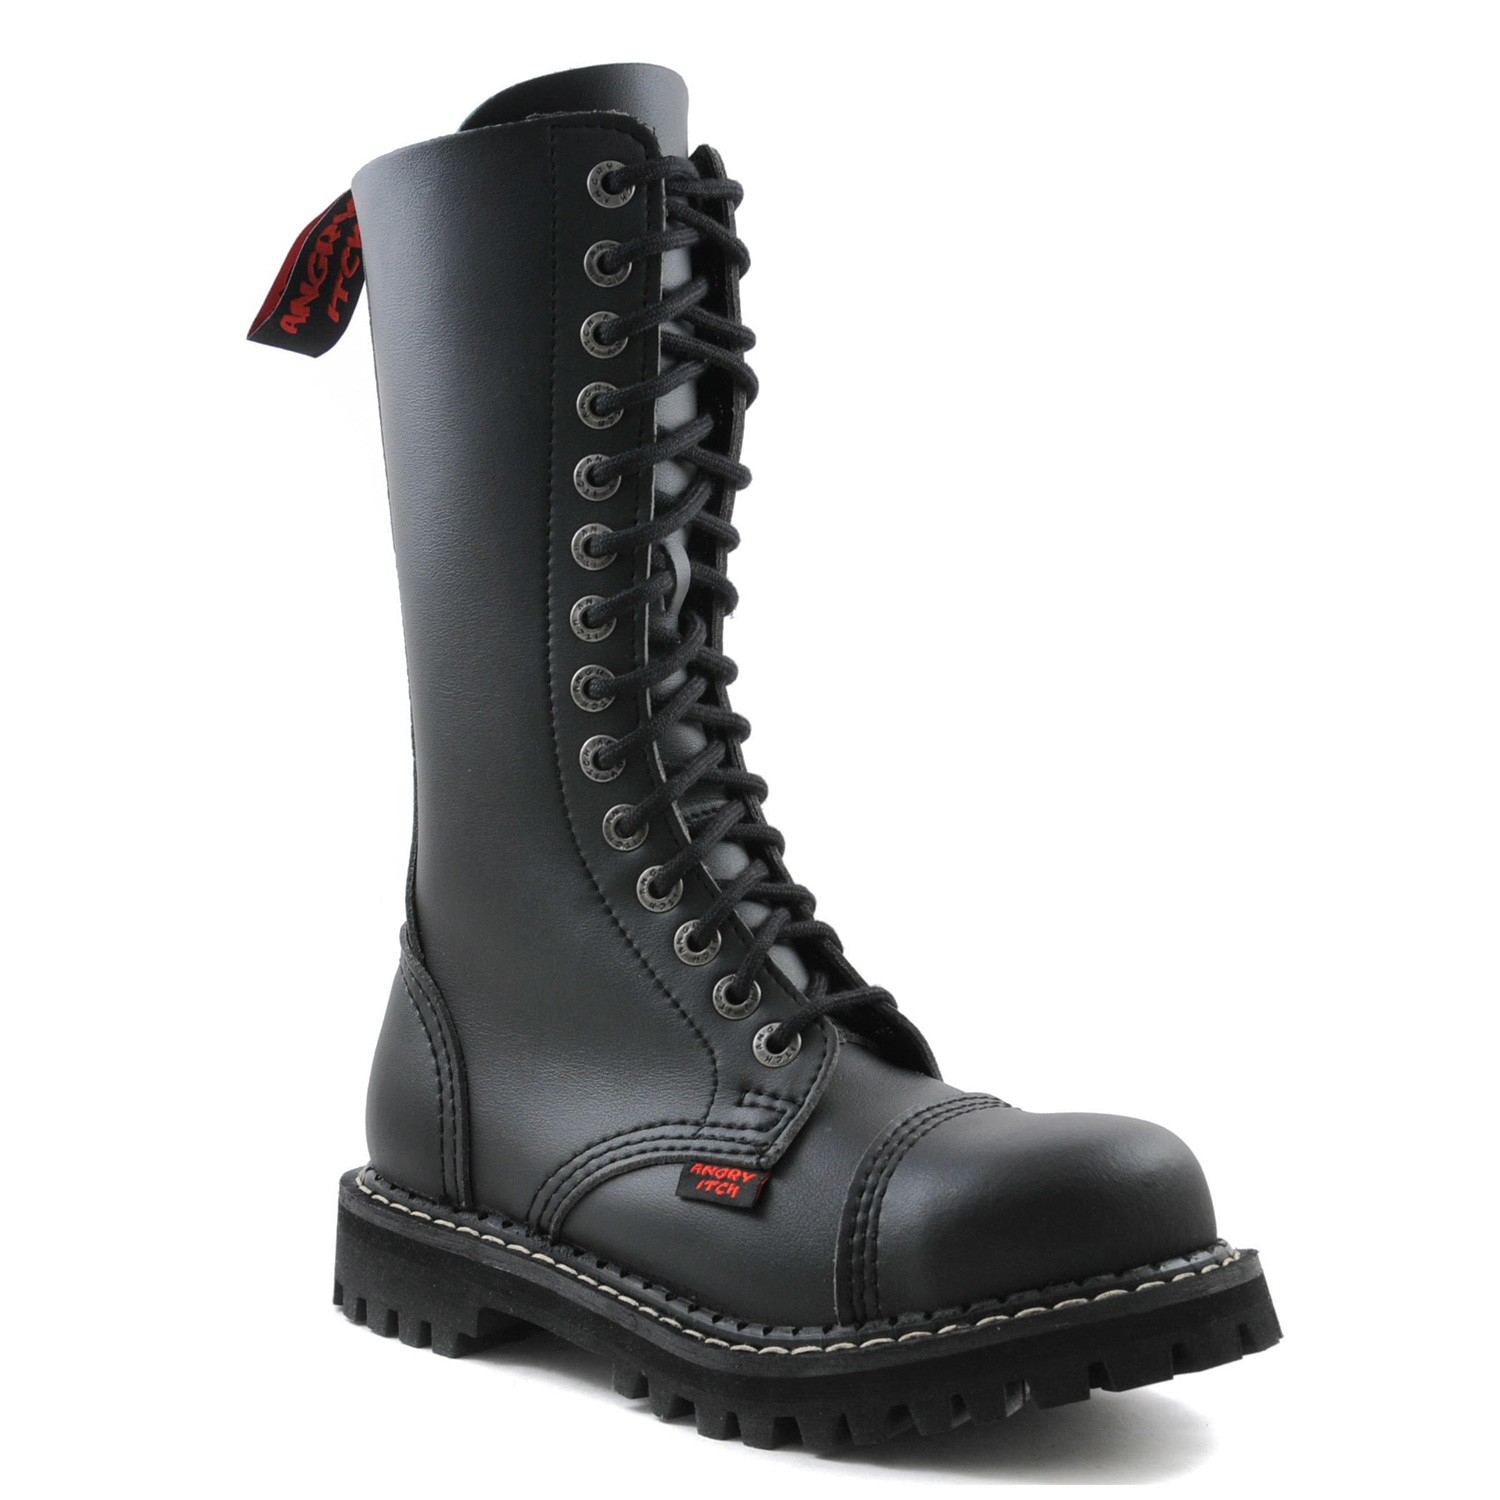 Angry Itch - 14-Loch Gothic Punk Army Ranger Armee schwarze vegane Stiefel mit RV & Stahlkappe 36-48 - Made in EU!